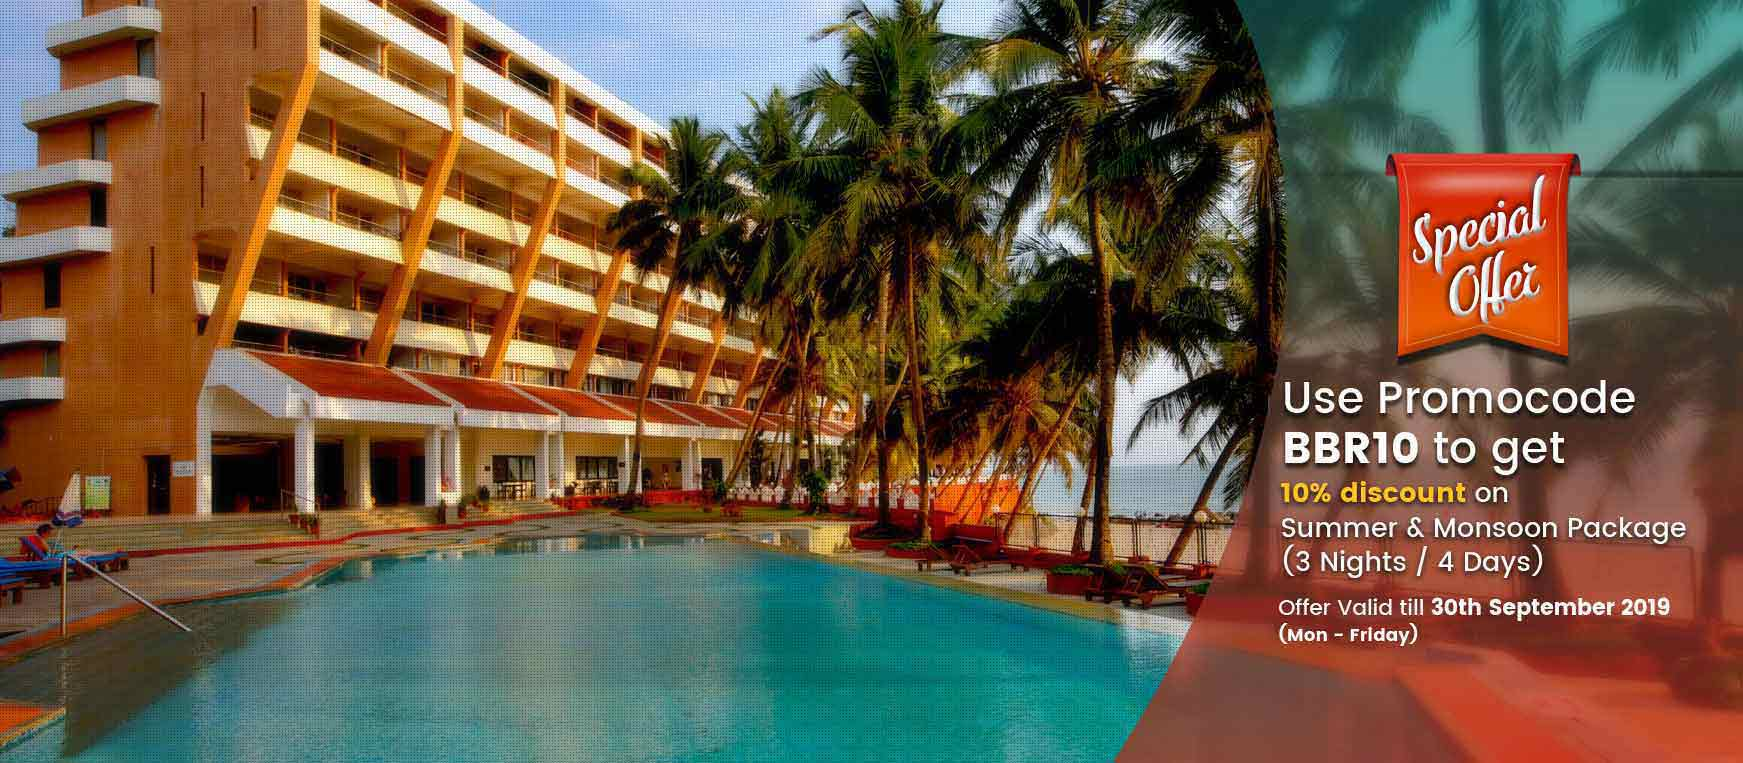 Bogmallo_Beach_Resort_in_goa_offer